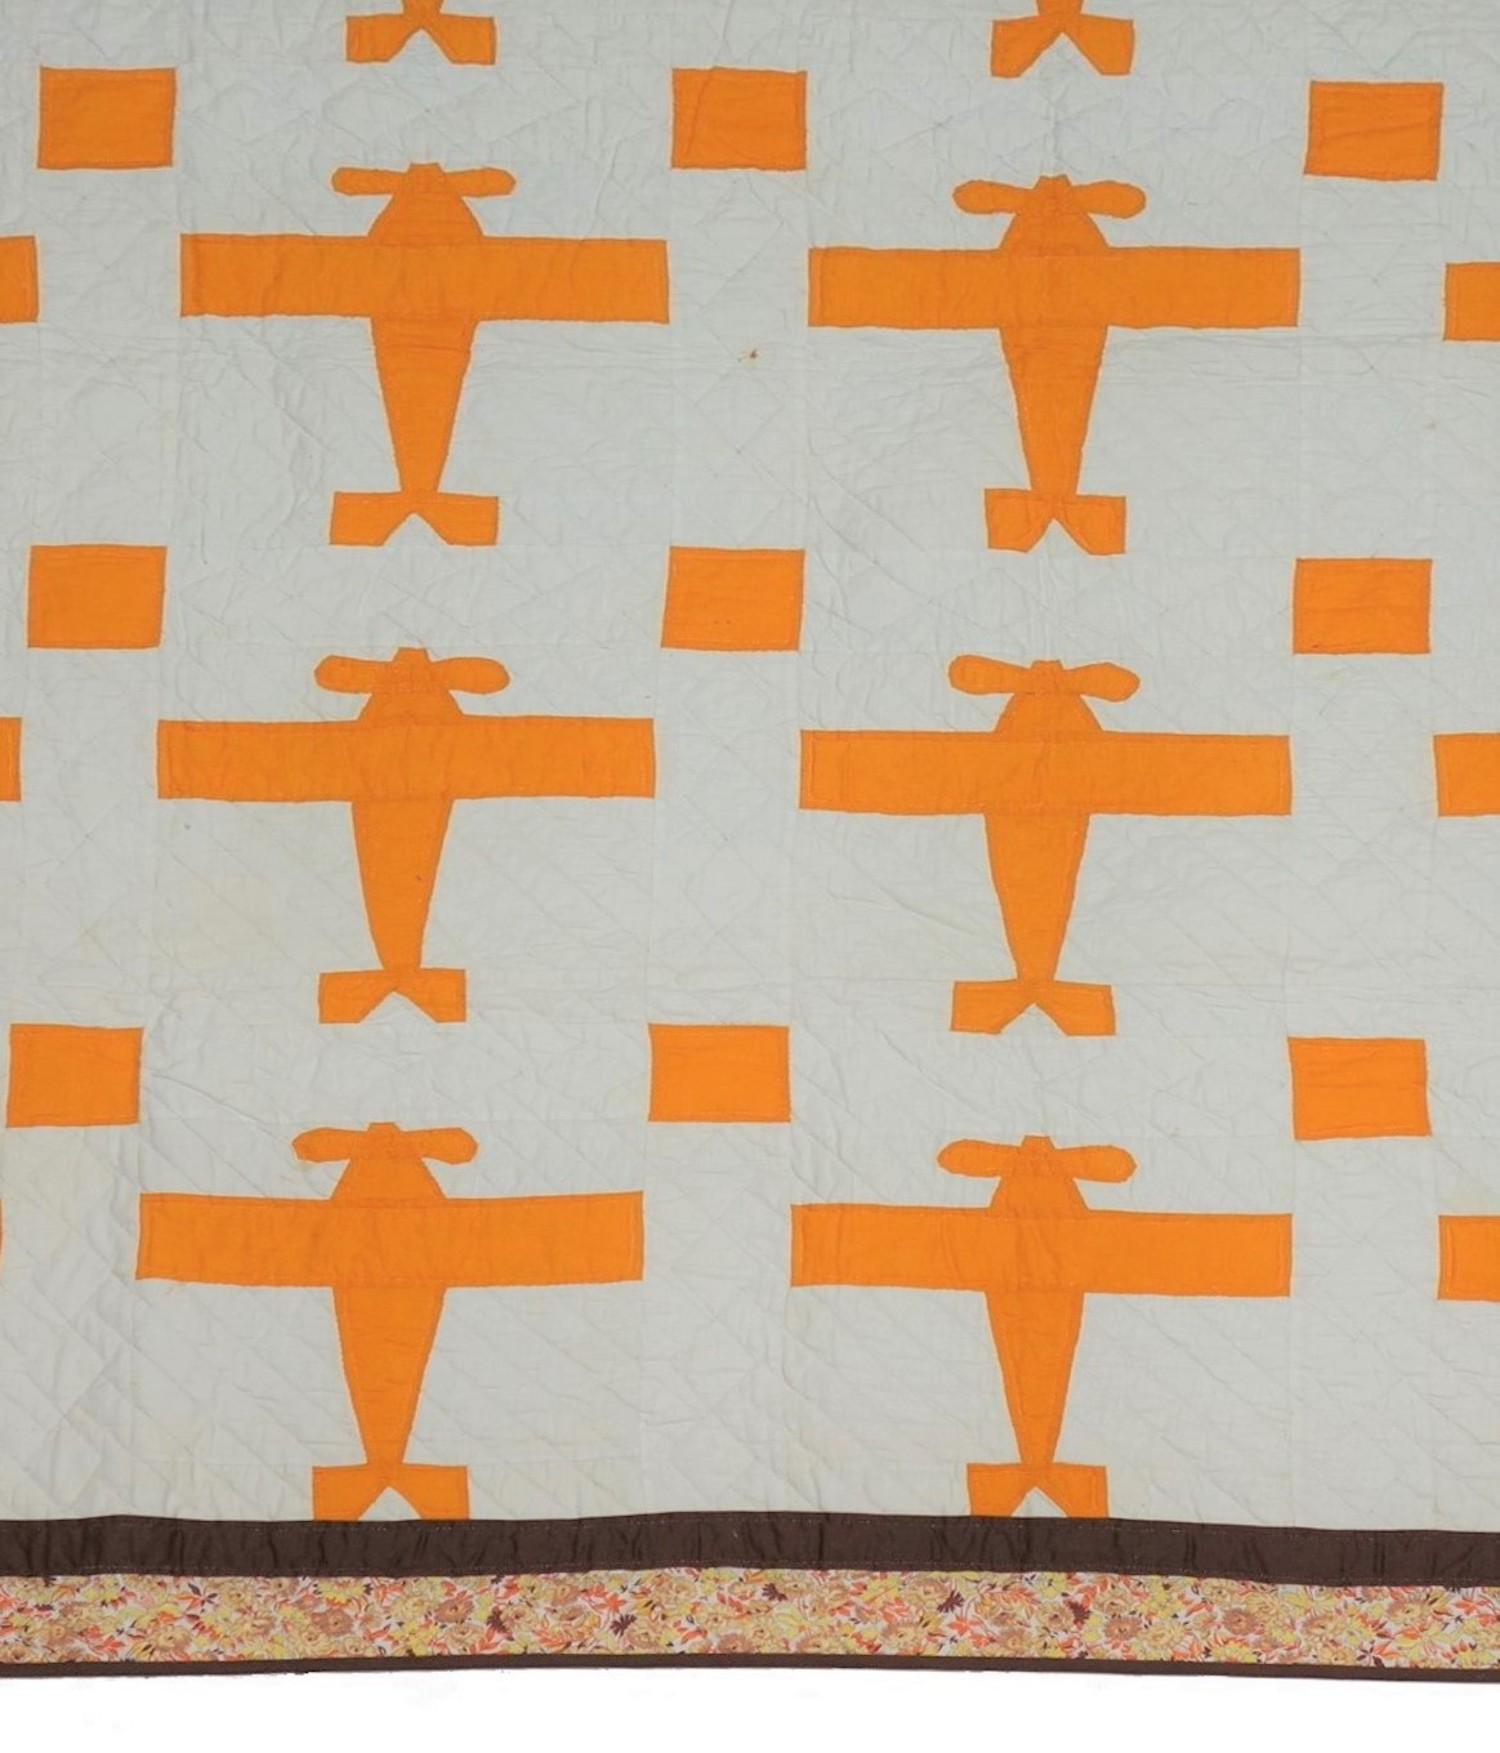 Detail of a quilt with airplanes, in commemoration of Charles Lindbergh's first solo-flight across the Atlantic, in May 1927, USA, late 1920s (TRC 2018.2627).